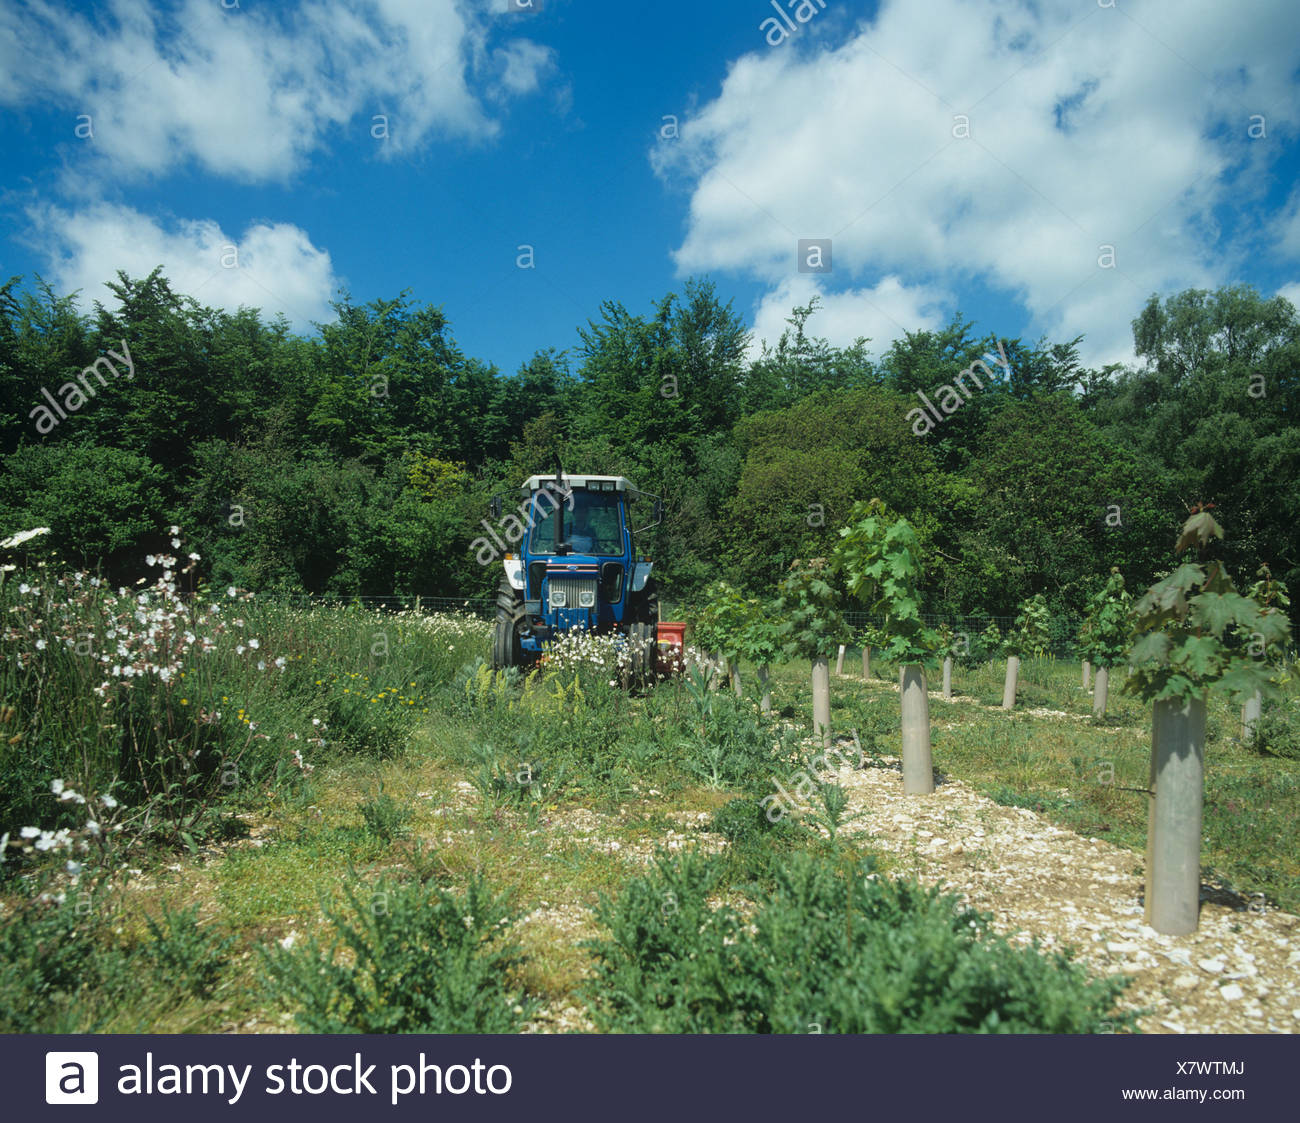 Tractor and mower topping weeds between the rows of young maple trees - Stock Image